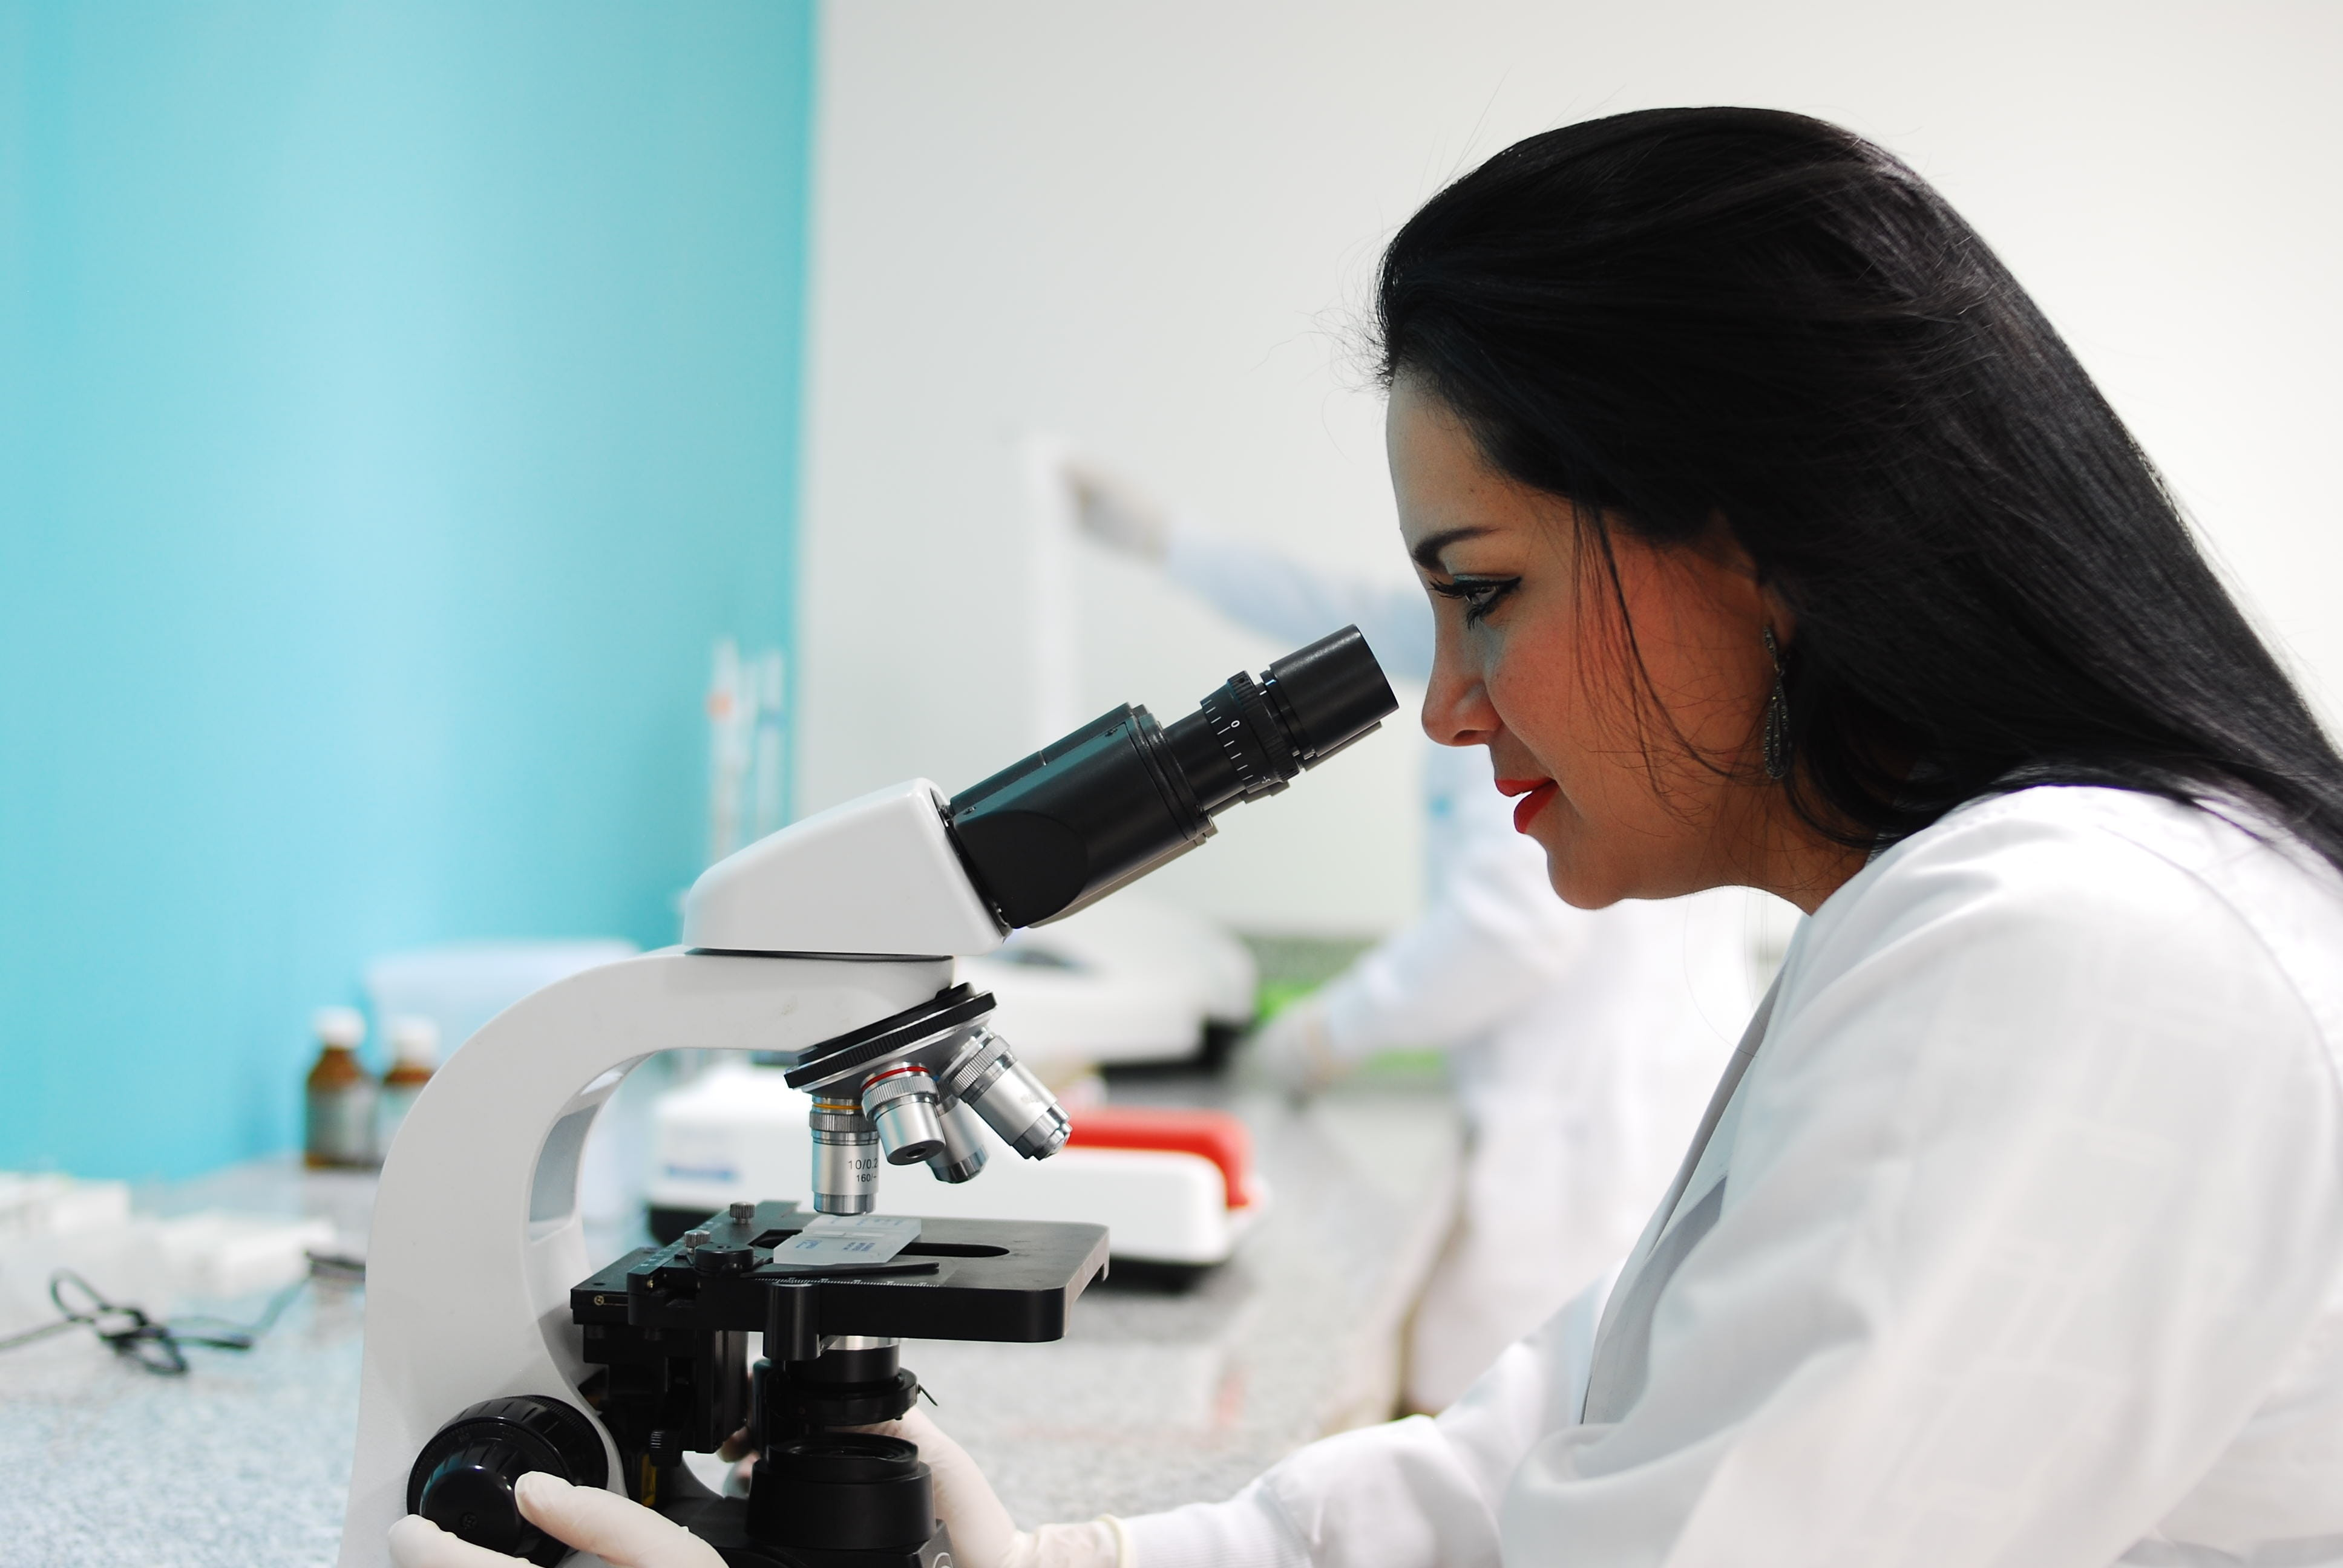 Scientist at work at a microscope